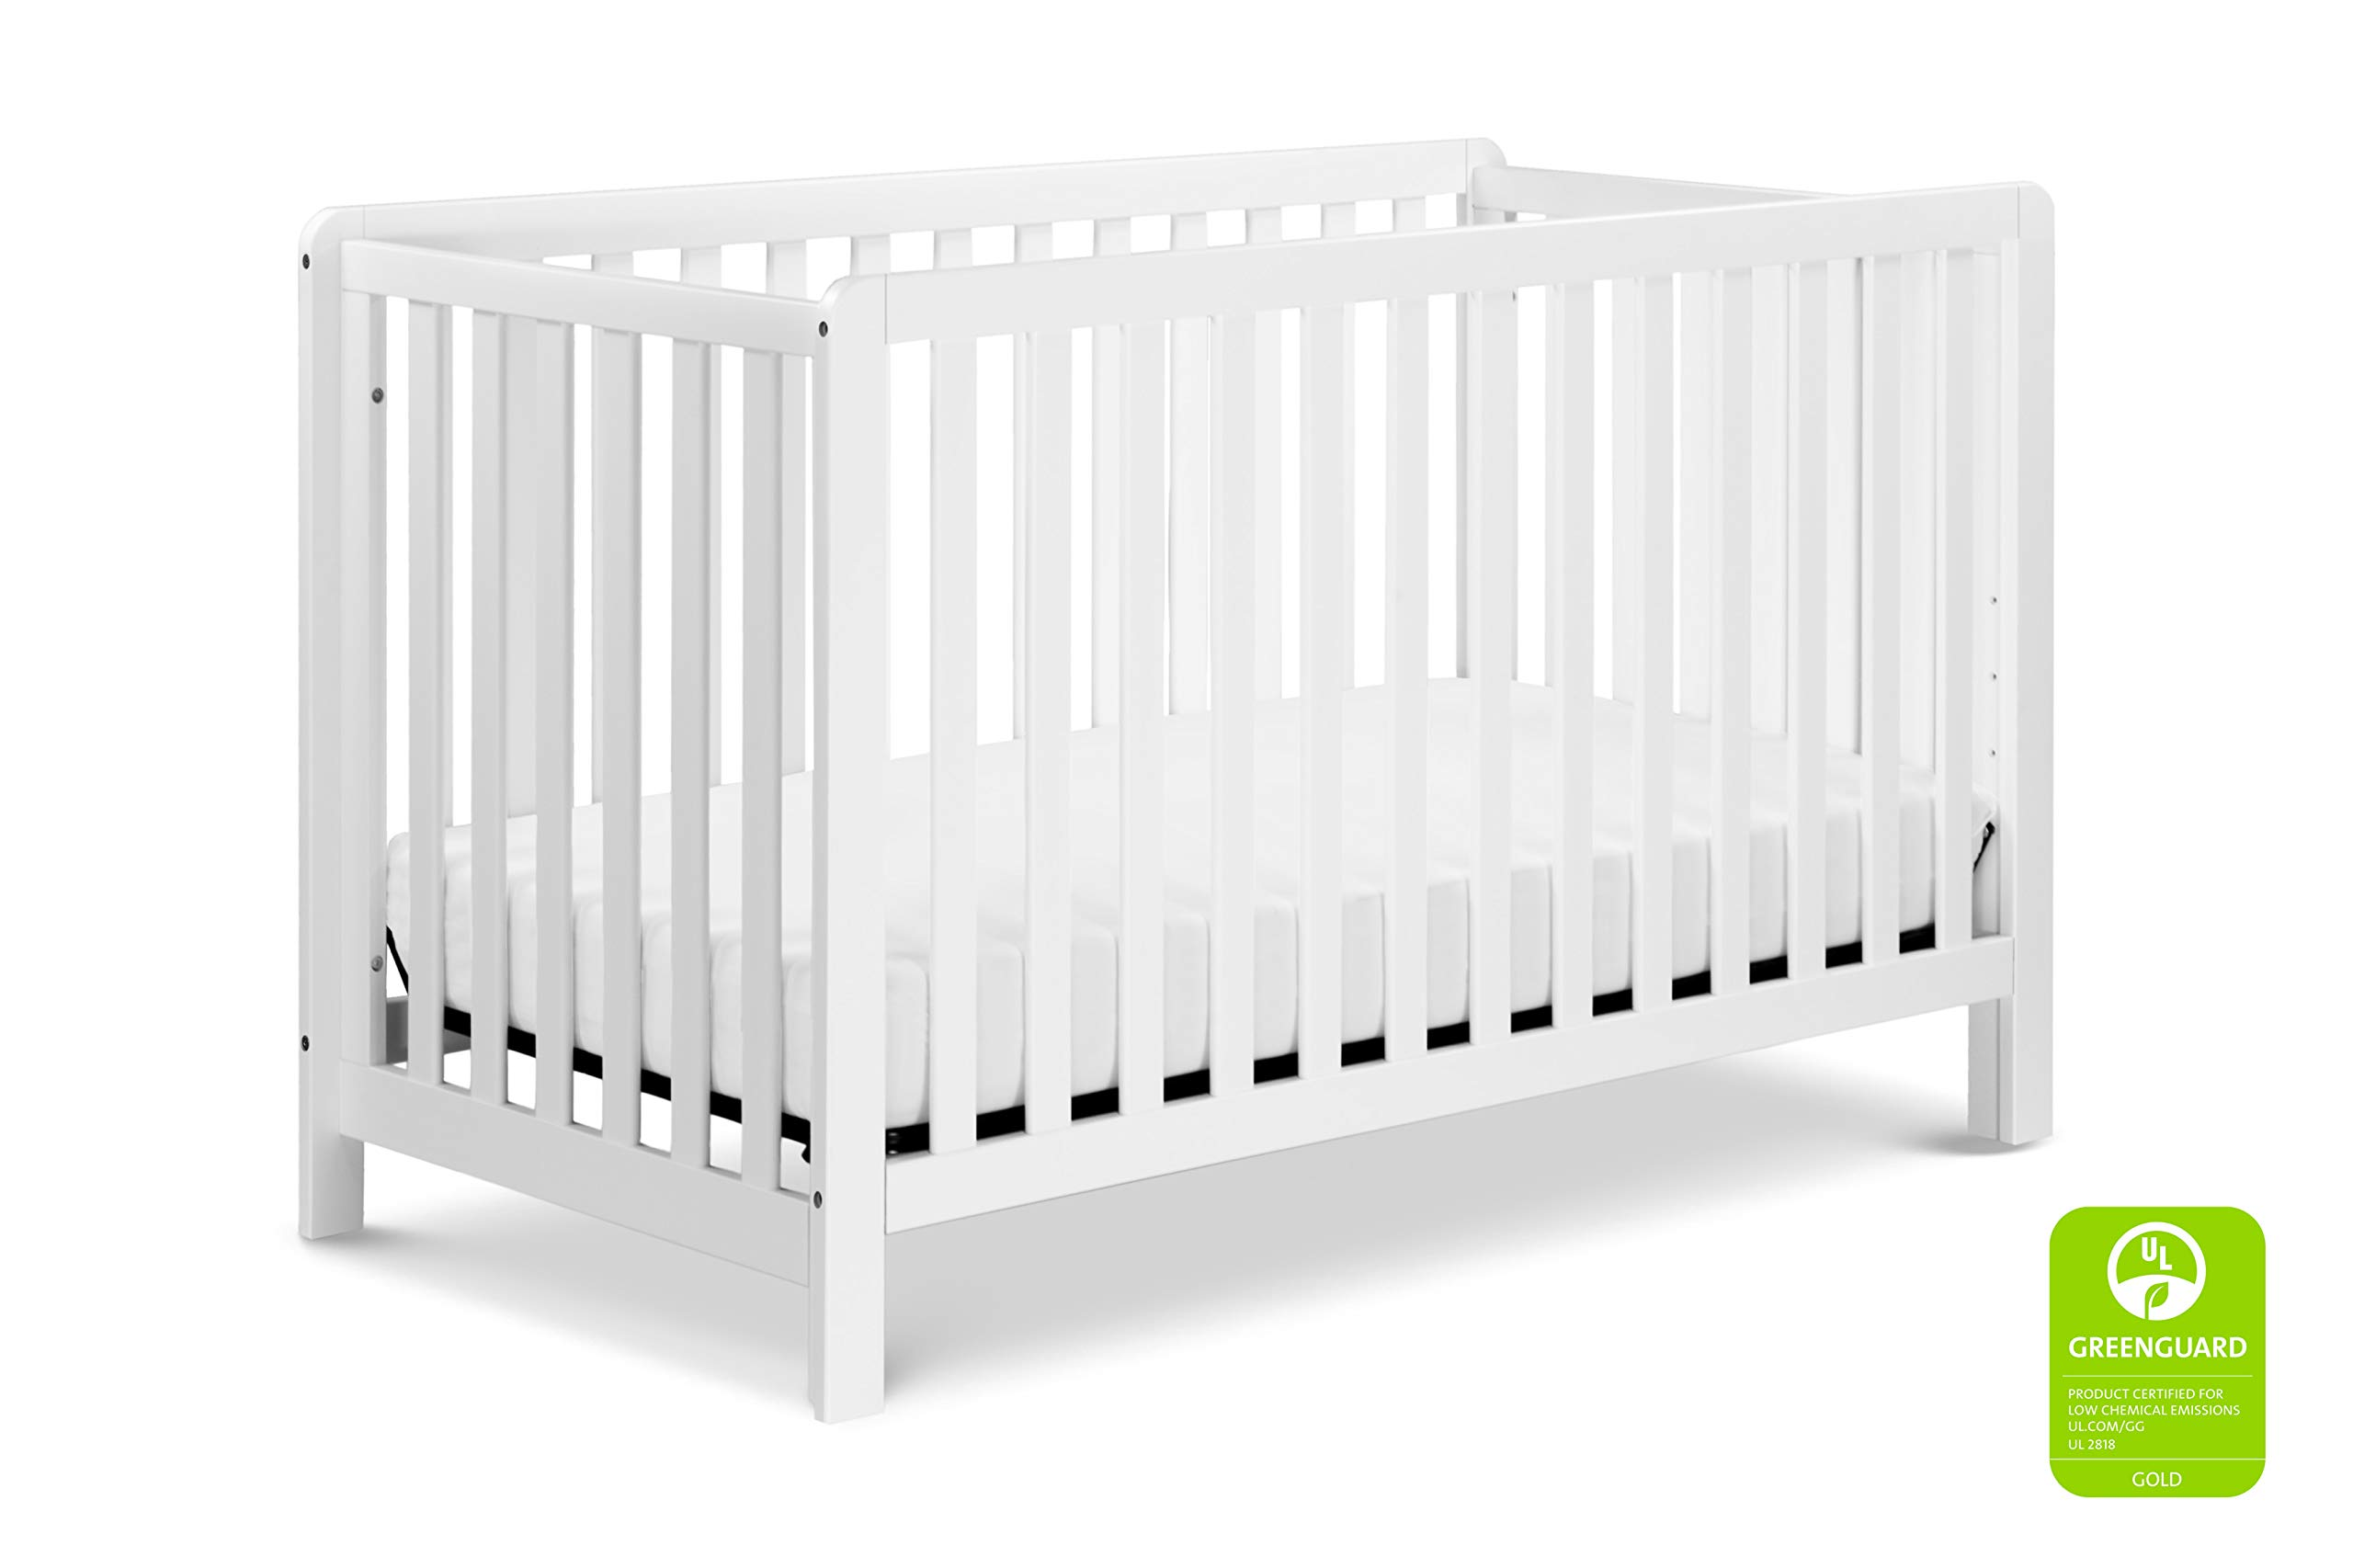 Carters DaVinci Colby Low Profile Convertible